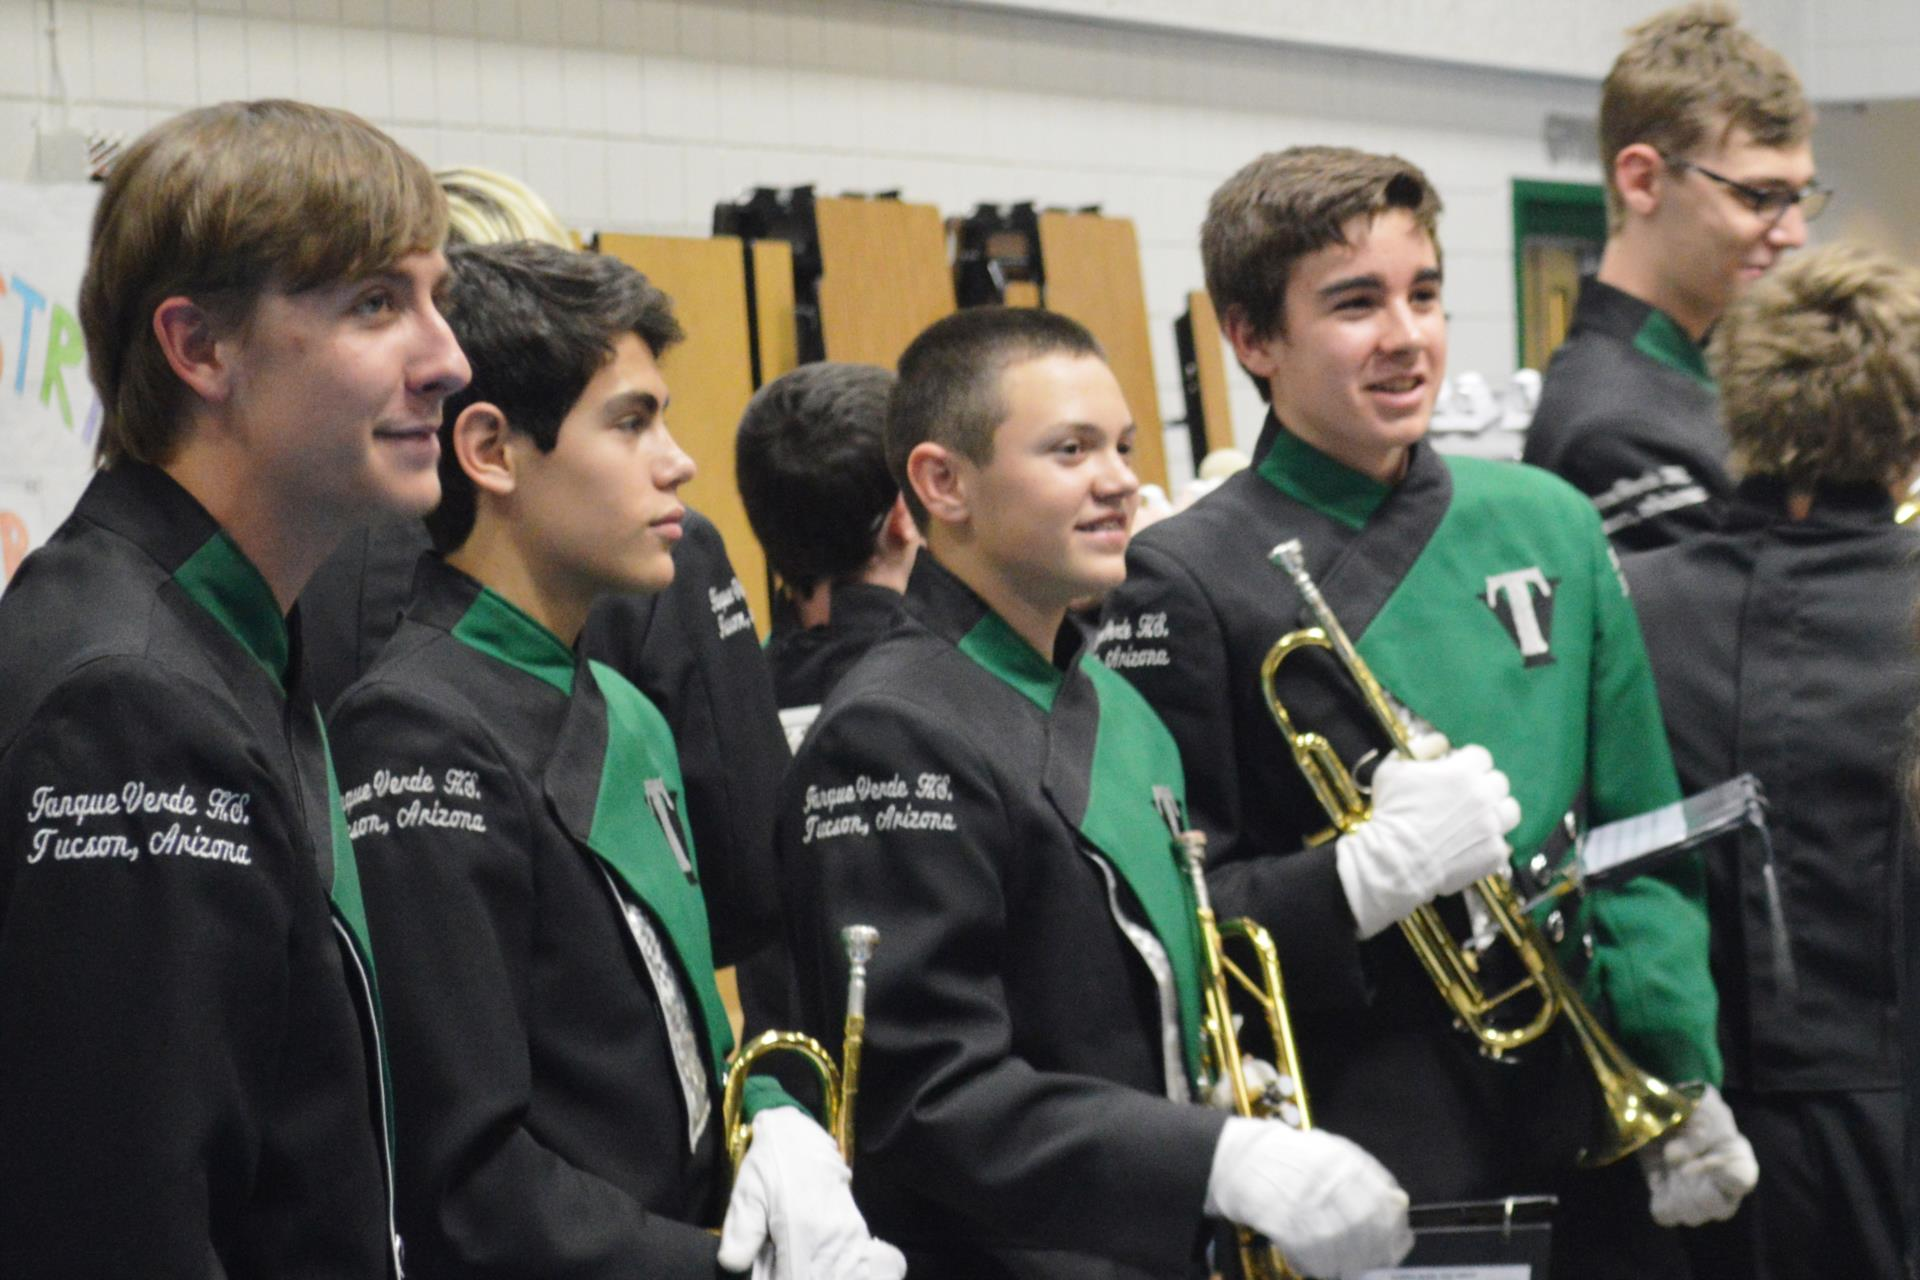 marching band students smiling